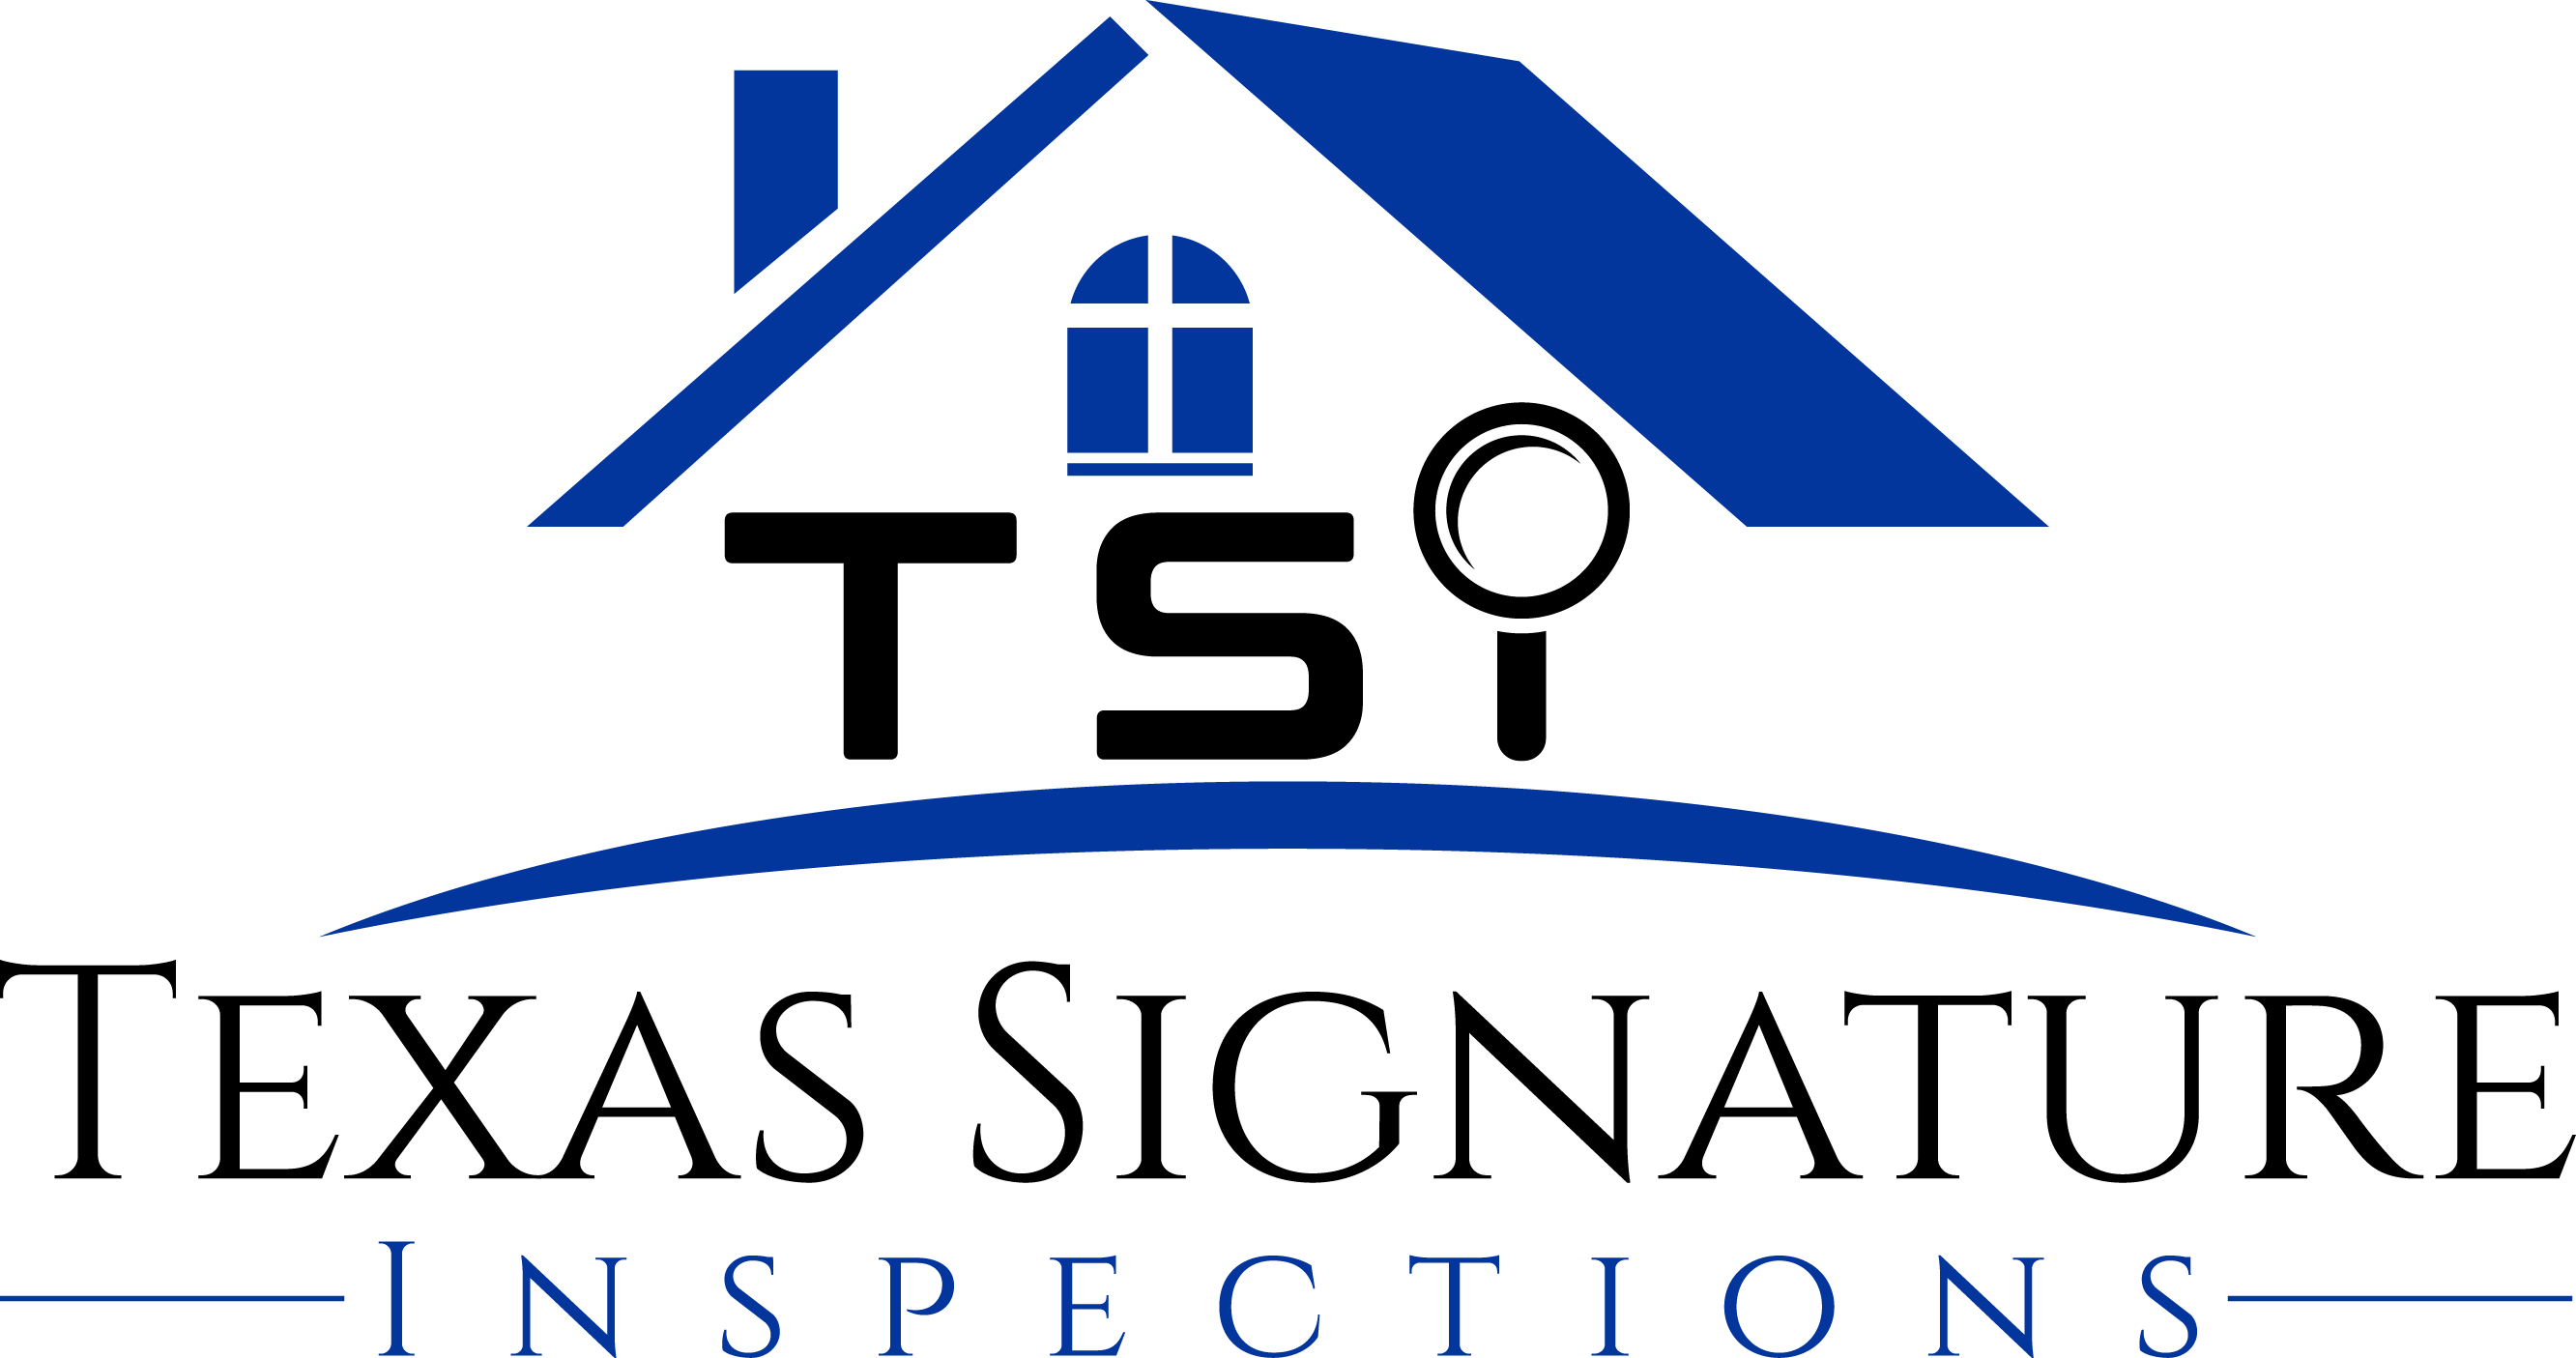 Katy TX Home Inspections - by Texas Signature Home Inspections